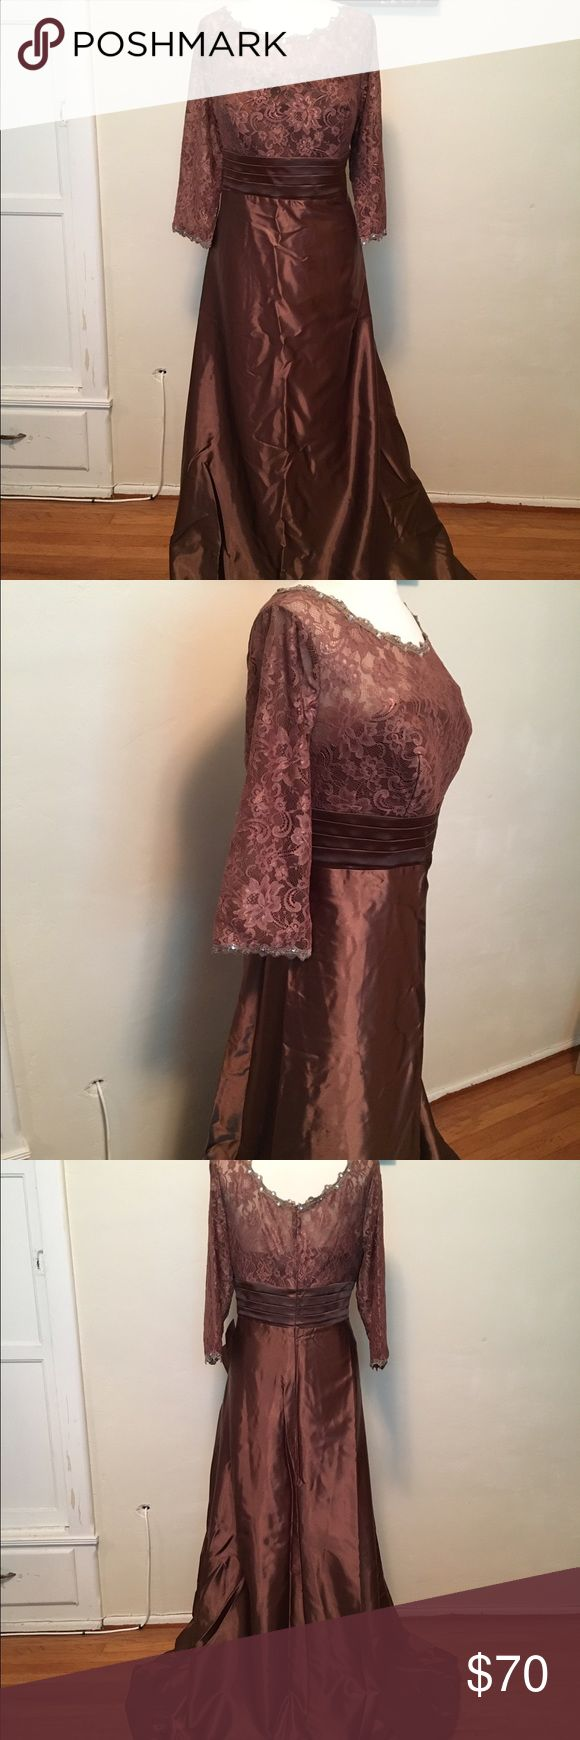 A-line Bridal/Mother of the Bride Dress Brown A-line Bridal/Mother of the Bride stretch satin dress with lace, brush train, 1/2 sleeves, lace....tags attached, never worn, in original bag & packing box. Dresses Wedding